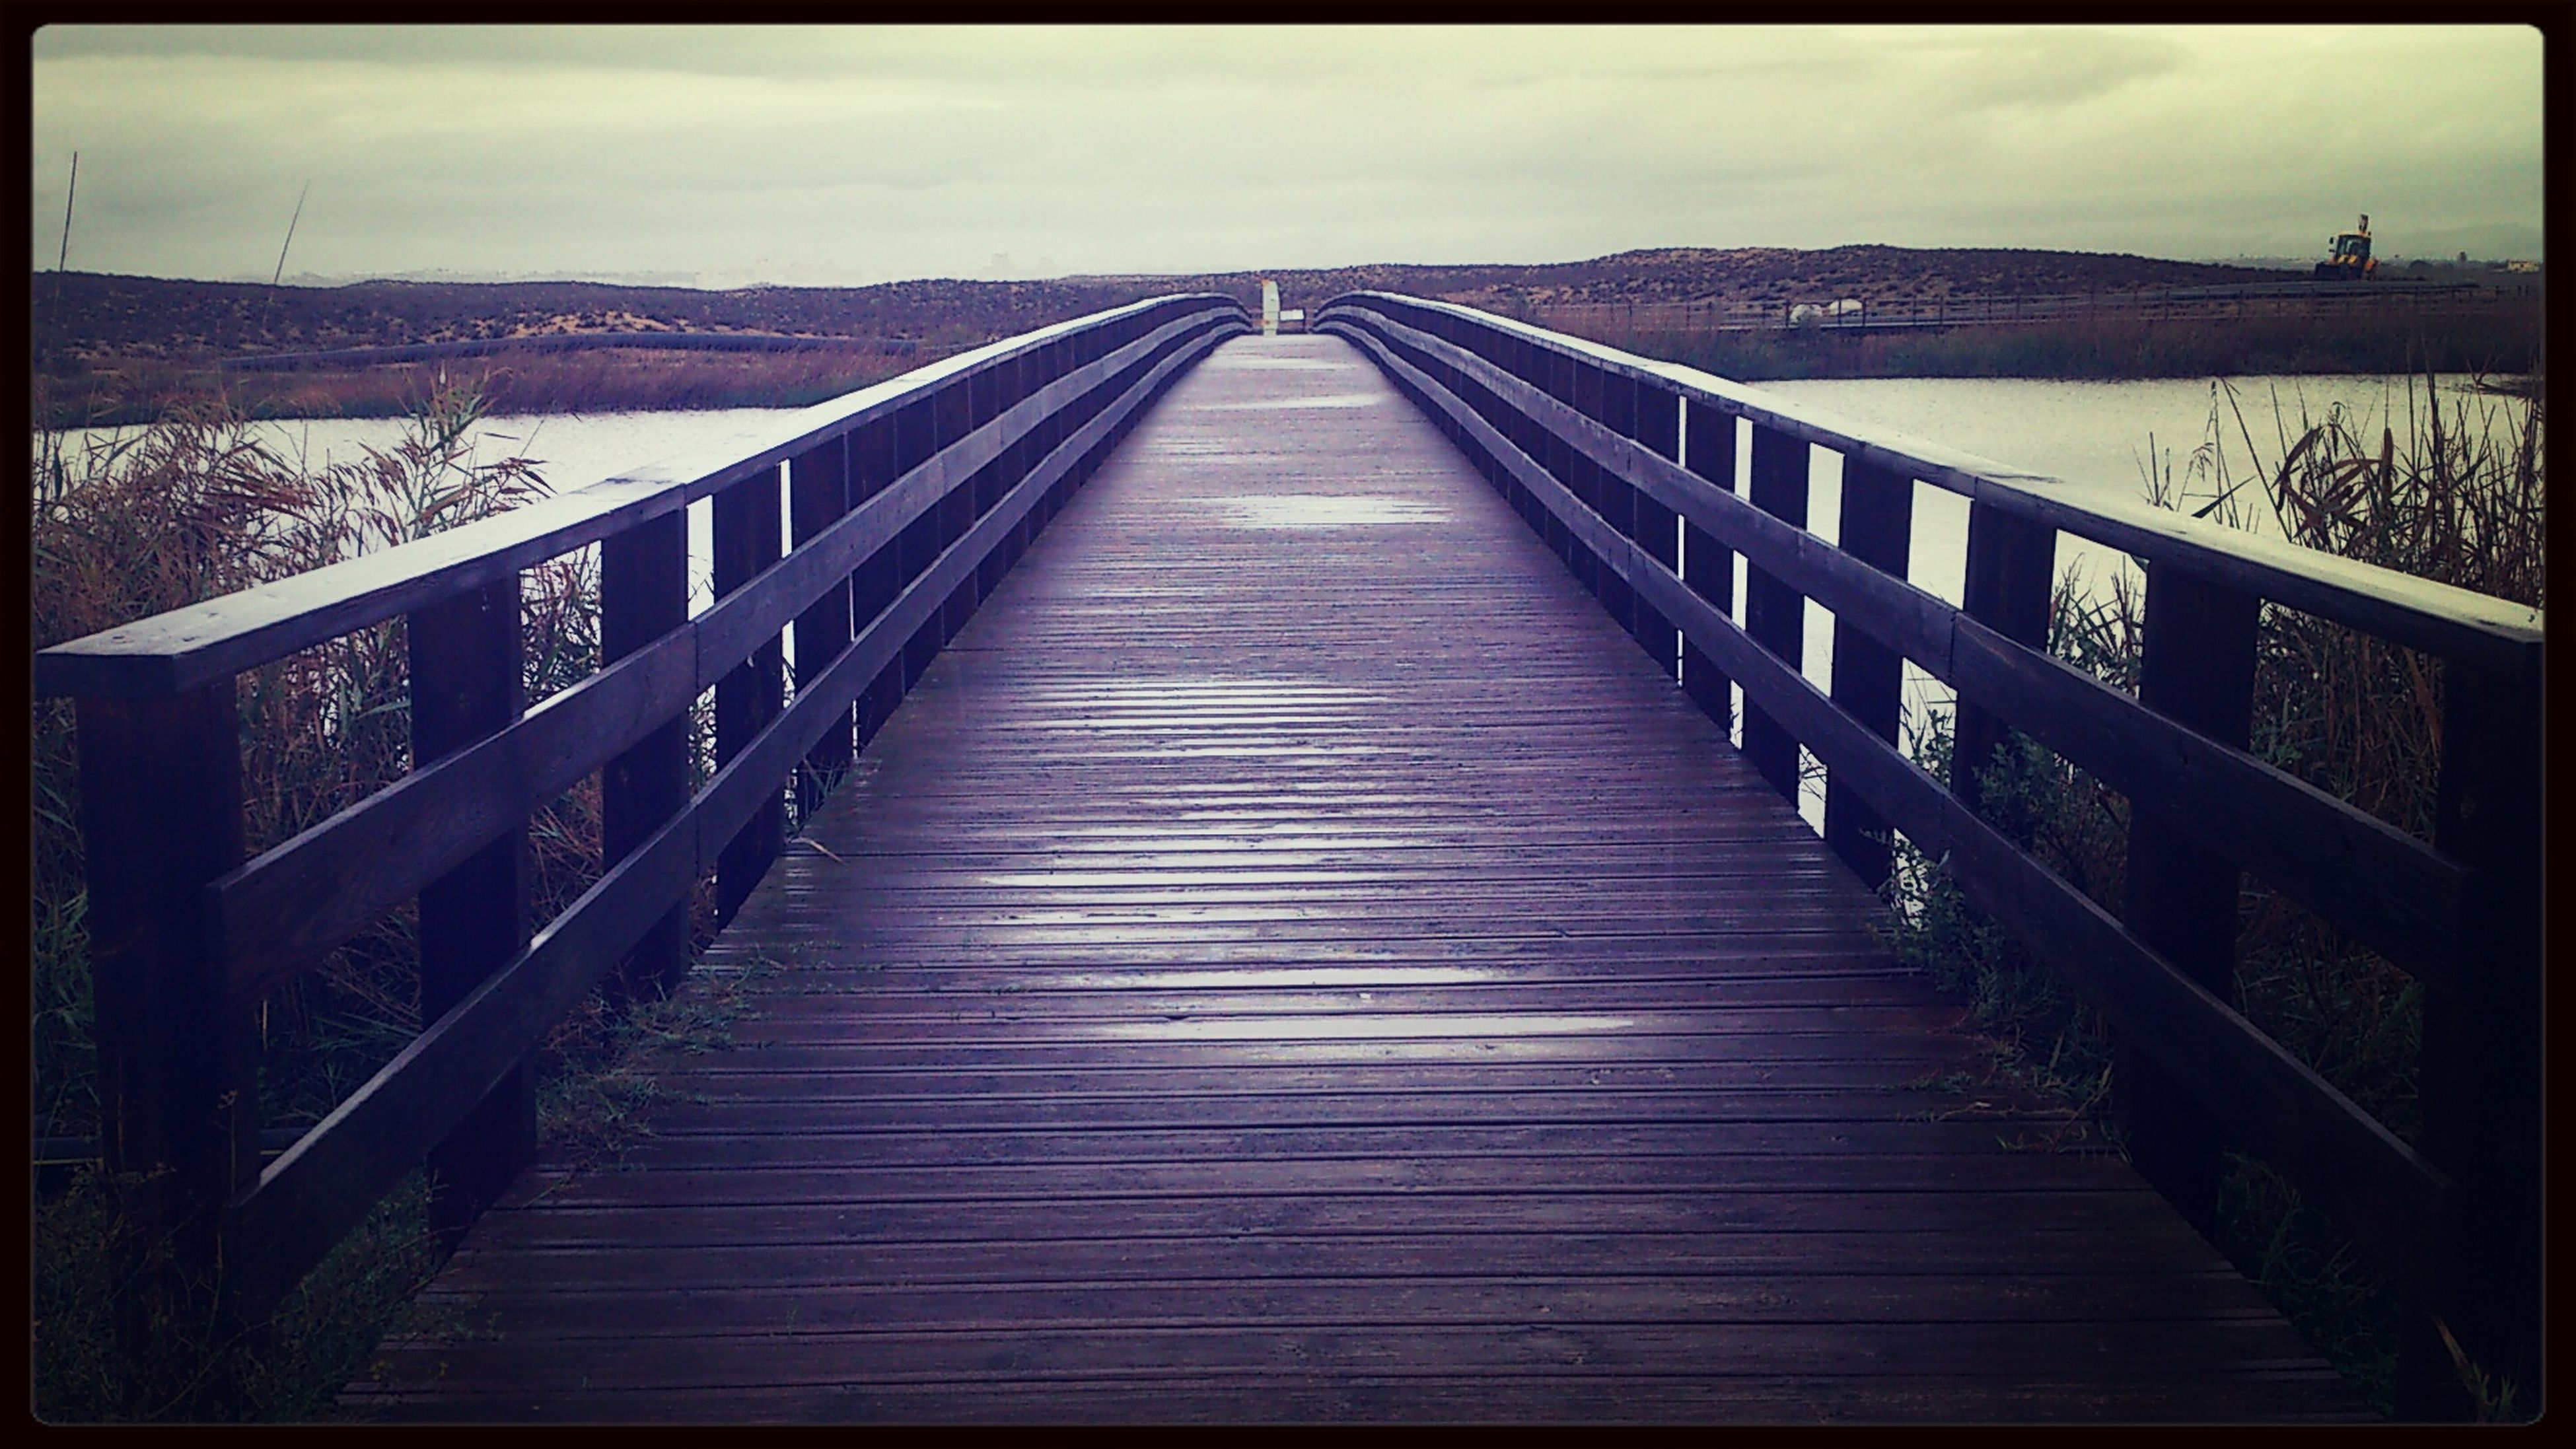 transfer print, the way forward, wood - material, boardwalk, railing, water, auto post production filter, pier, sky, tranquility, footbridge, tranquil scene, diminishing perspective, wood, wood paneling, built structure, long, scenics, nature, connection